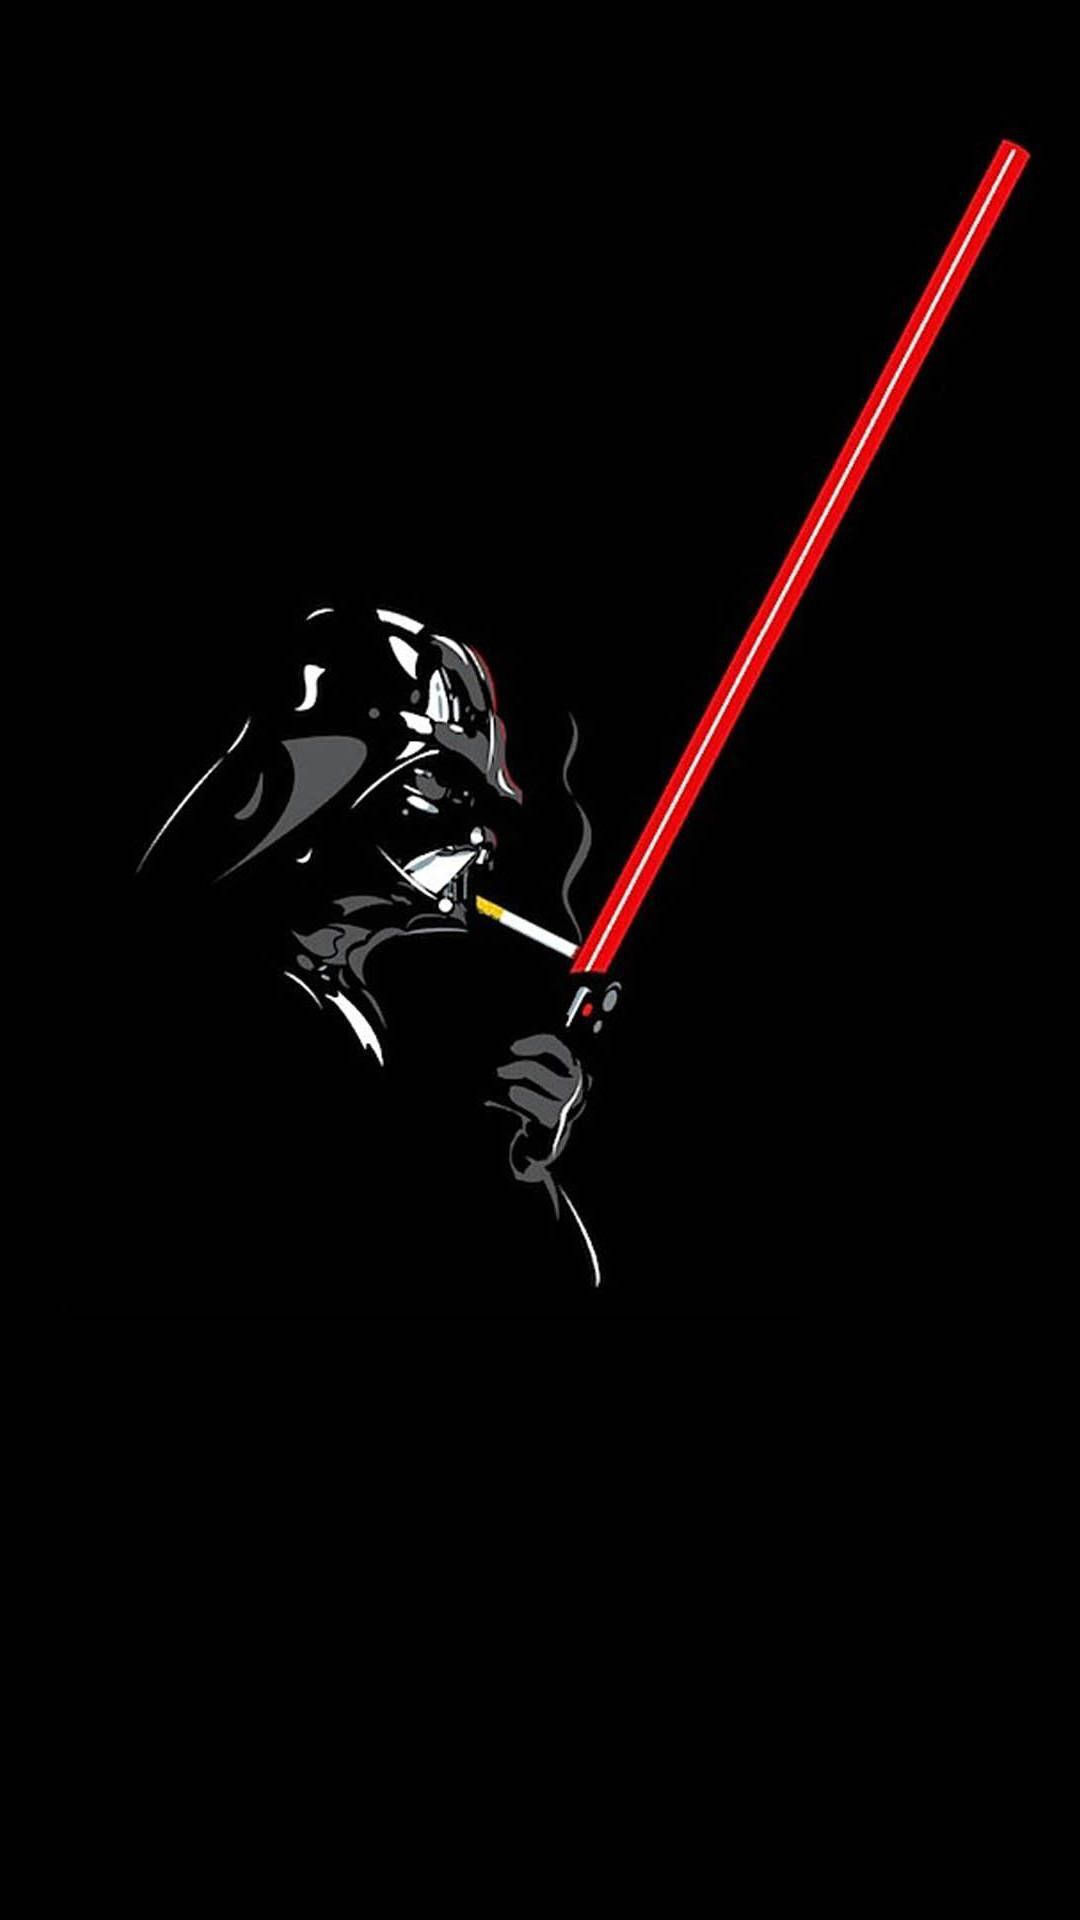 Pin By Candy On Filmy Star Wars Wallpaper Iphone Star Wars Wallpaper Darth Vader Wallpaper